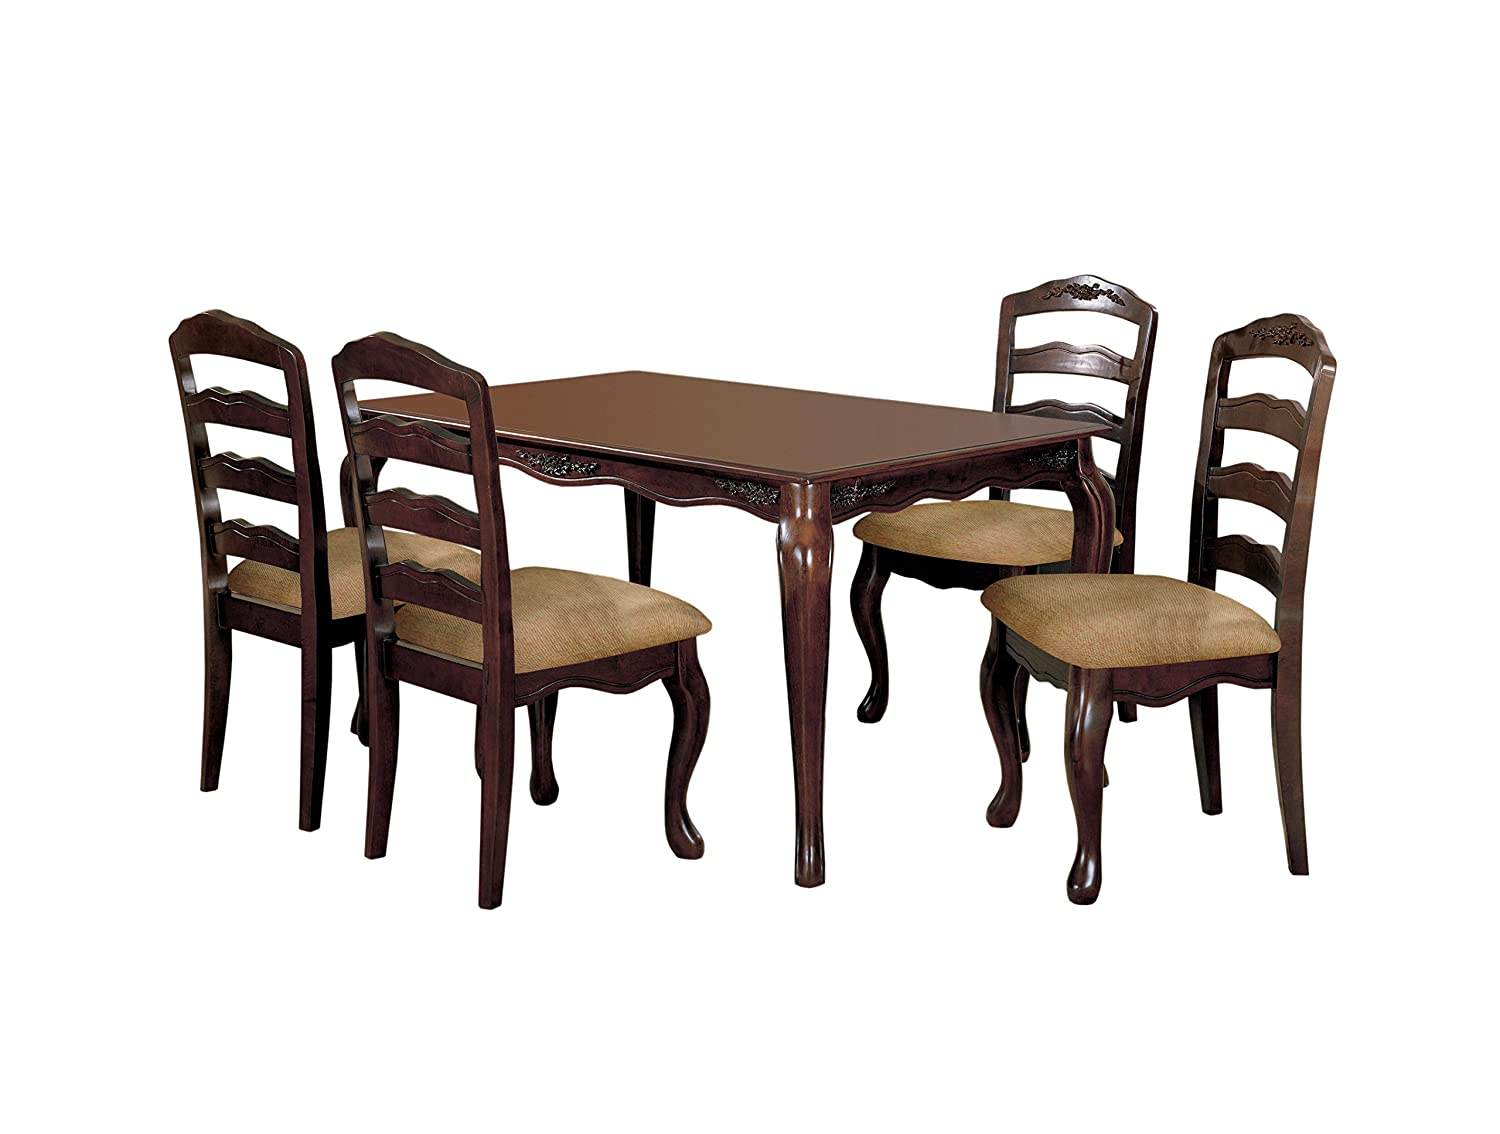 "HOMES: Inside + Out Kathryn 5 Piece Classic Style Dining Table Set with 18"" Expandable Leaf, Dark Walnut"